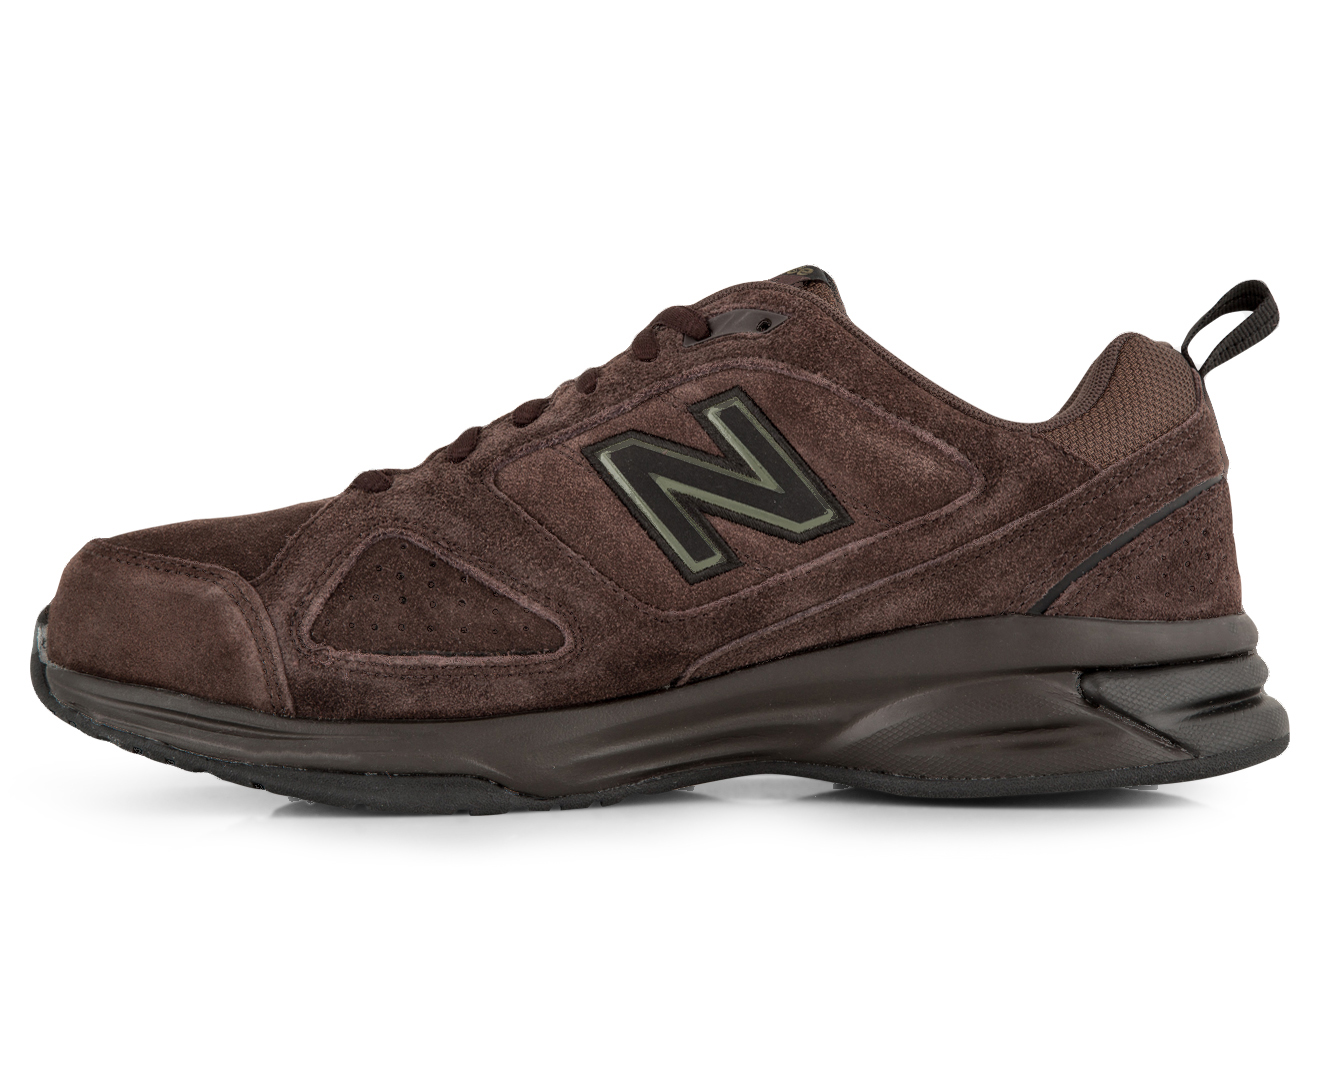 New Balance Shoes Wide Mens